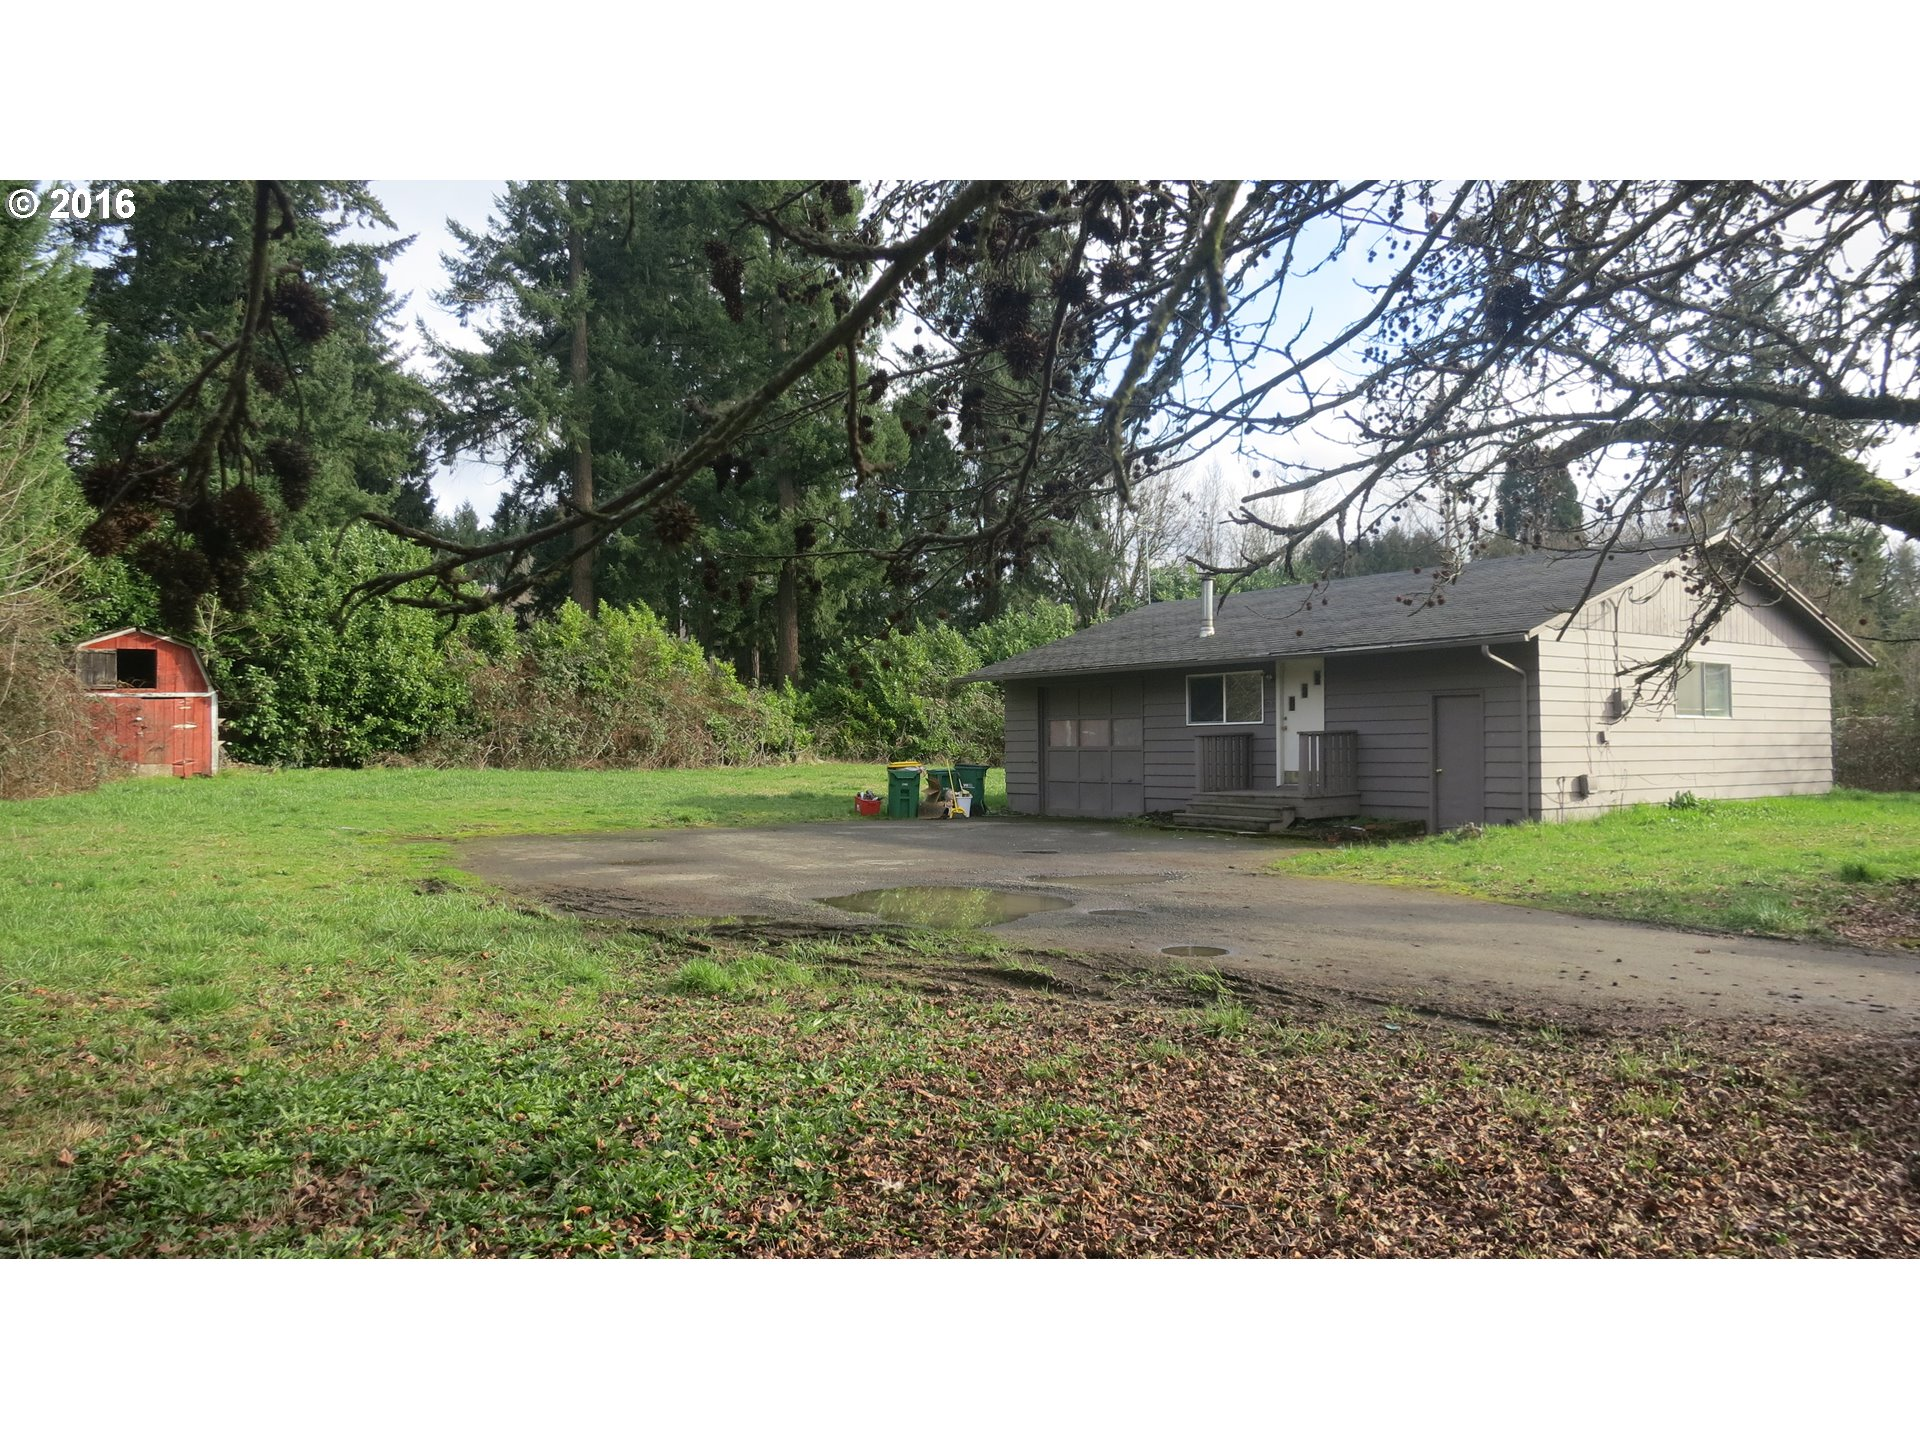 5010 SW 149th Ave, Beaverton, OR